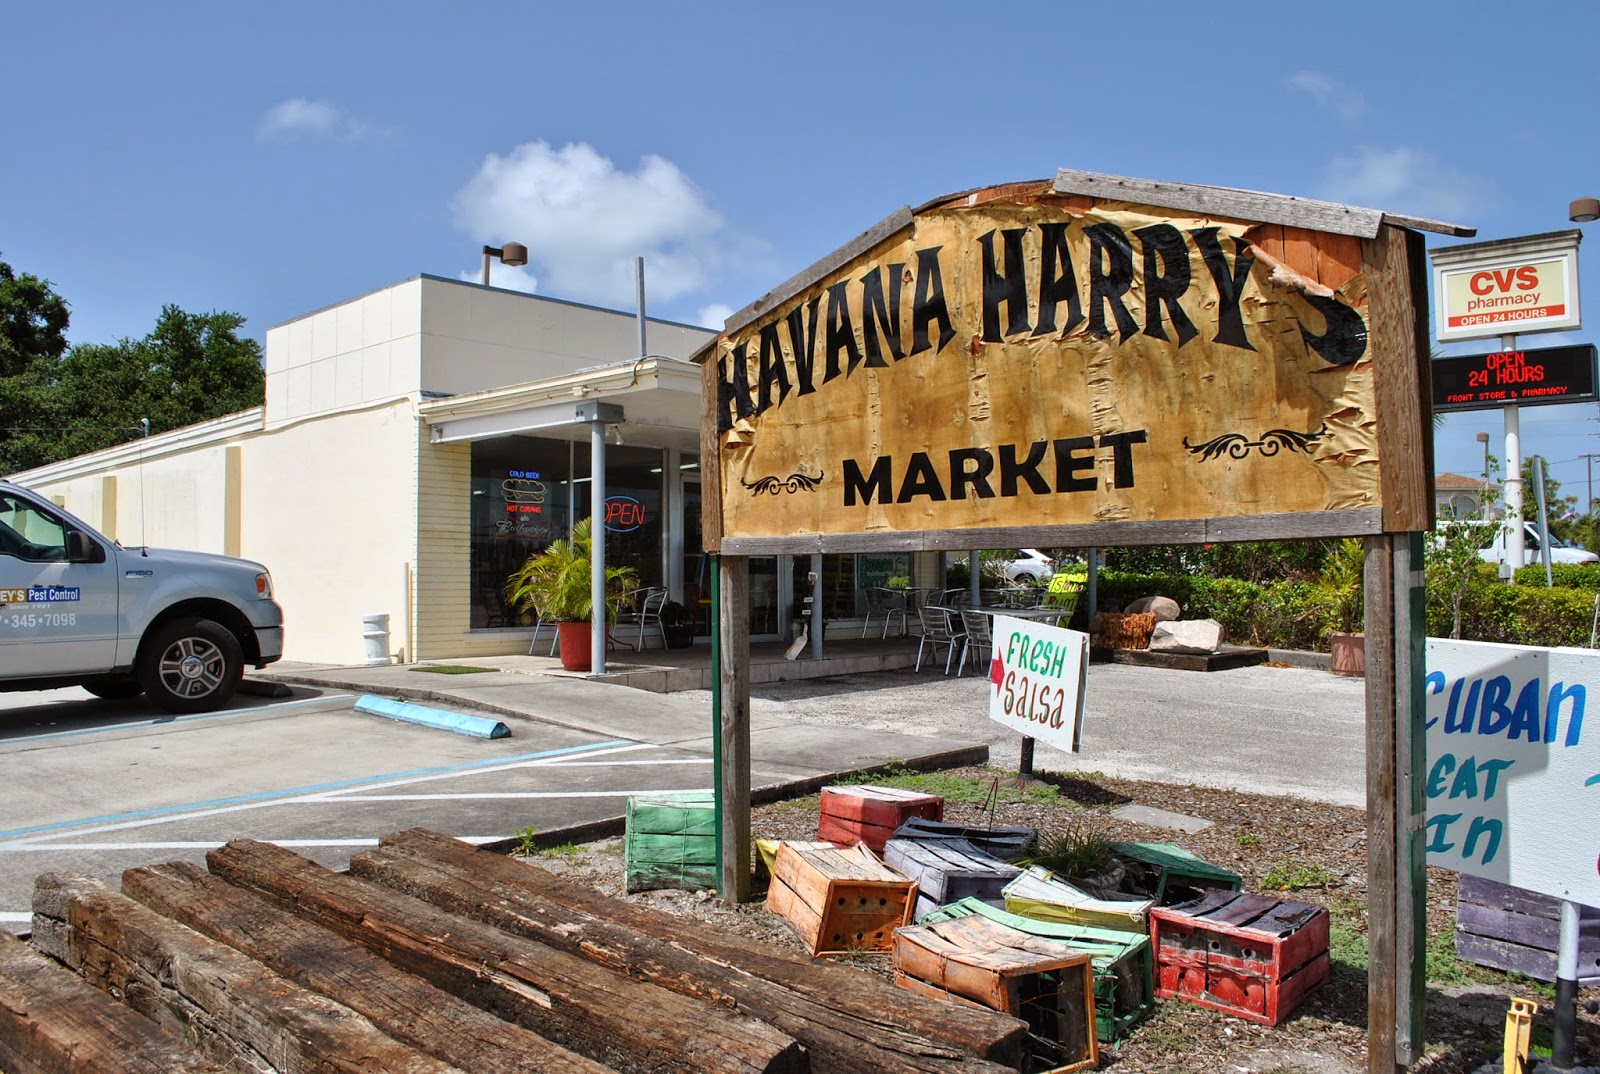 Havana Harry's in Largo, FL - The Top 10 Local Restaurants in St Pete, FL - Places you should eat while visiting St Pete